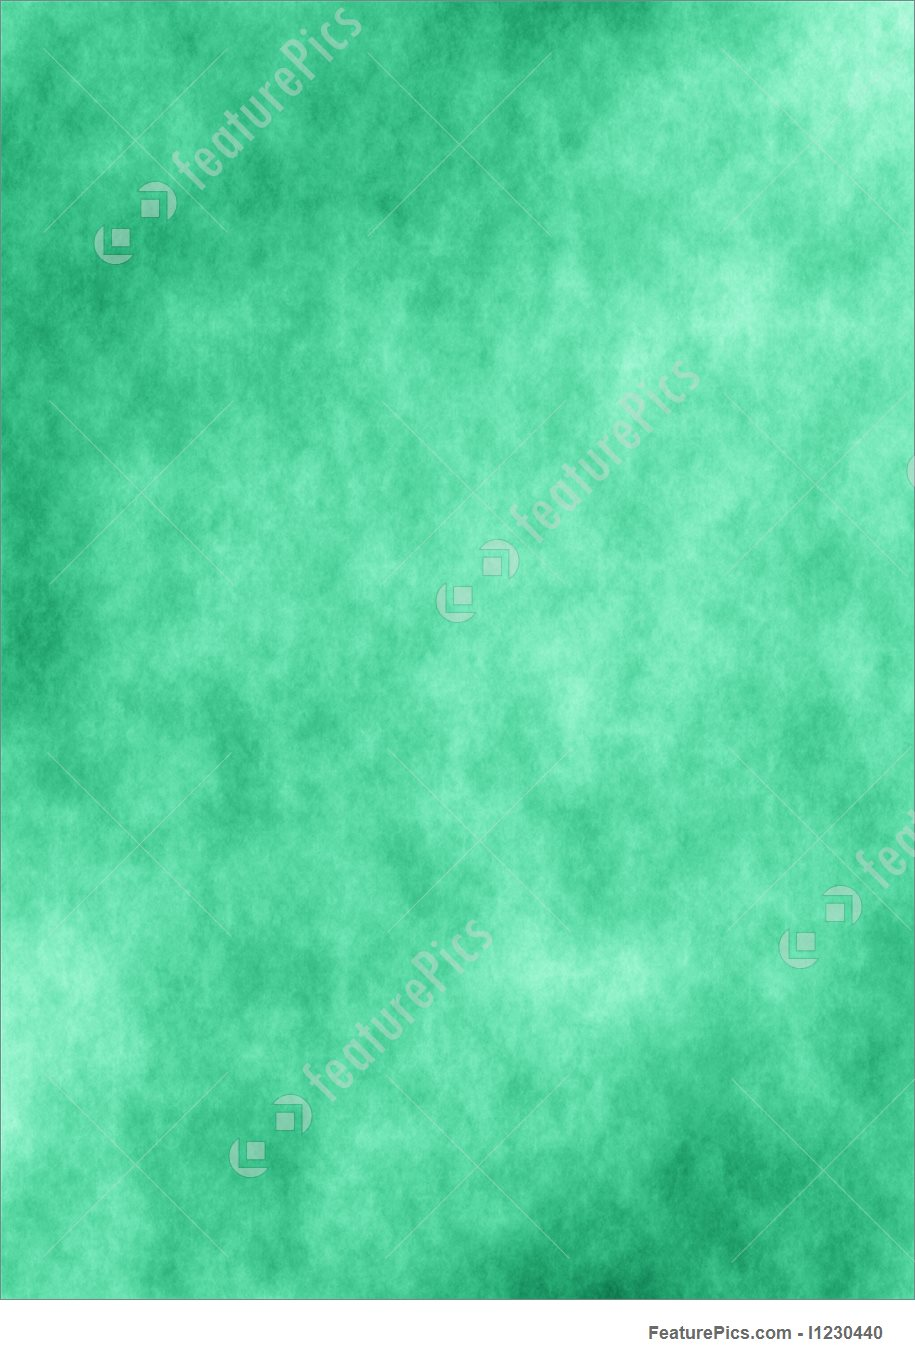 Simple Light Green Paper Suitable For Background Wallpaper - Light Green Grunge Background - HD Wallpaper